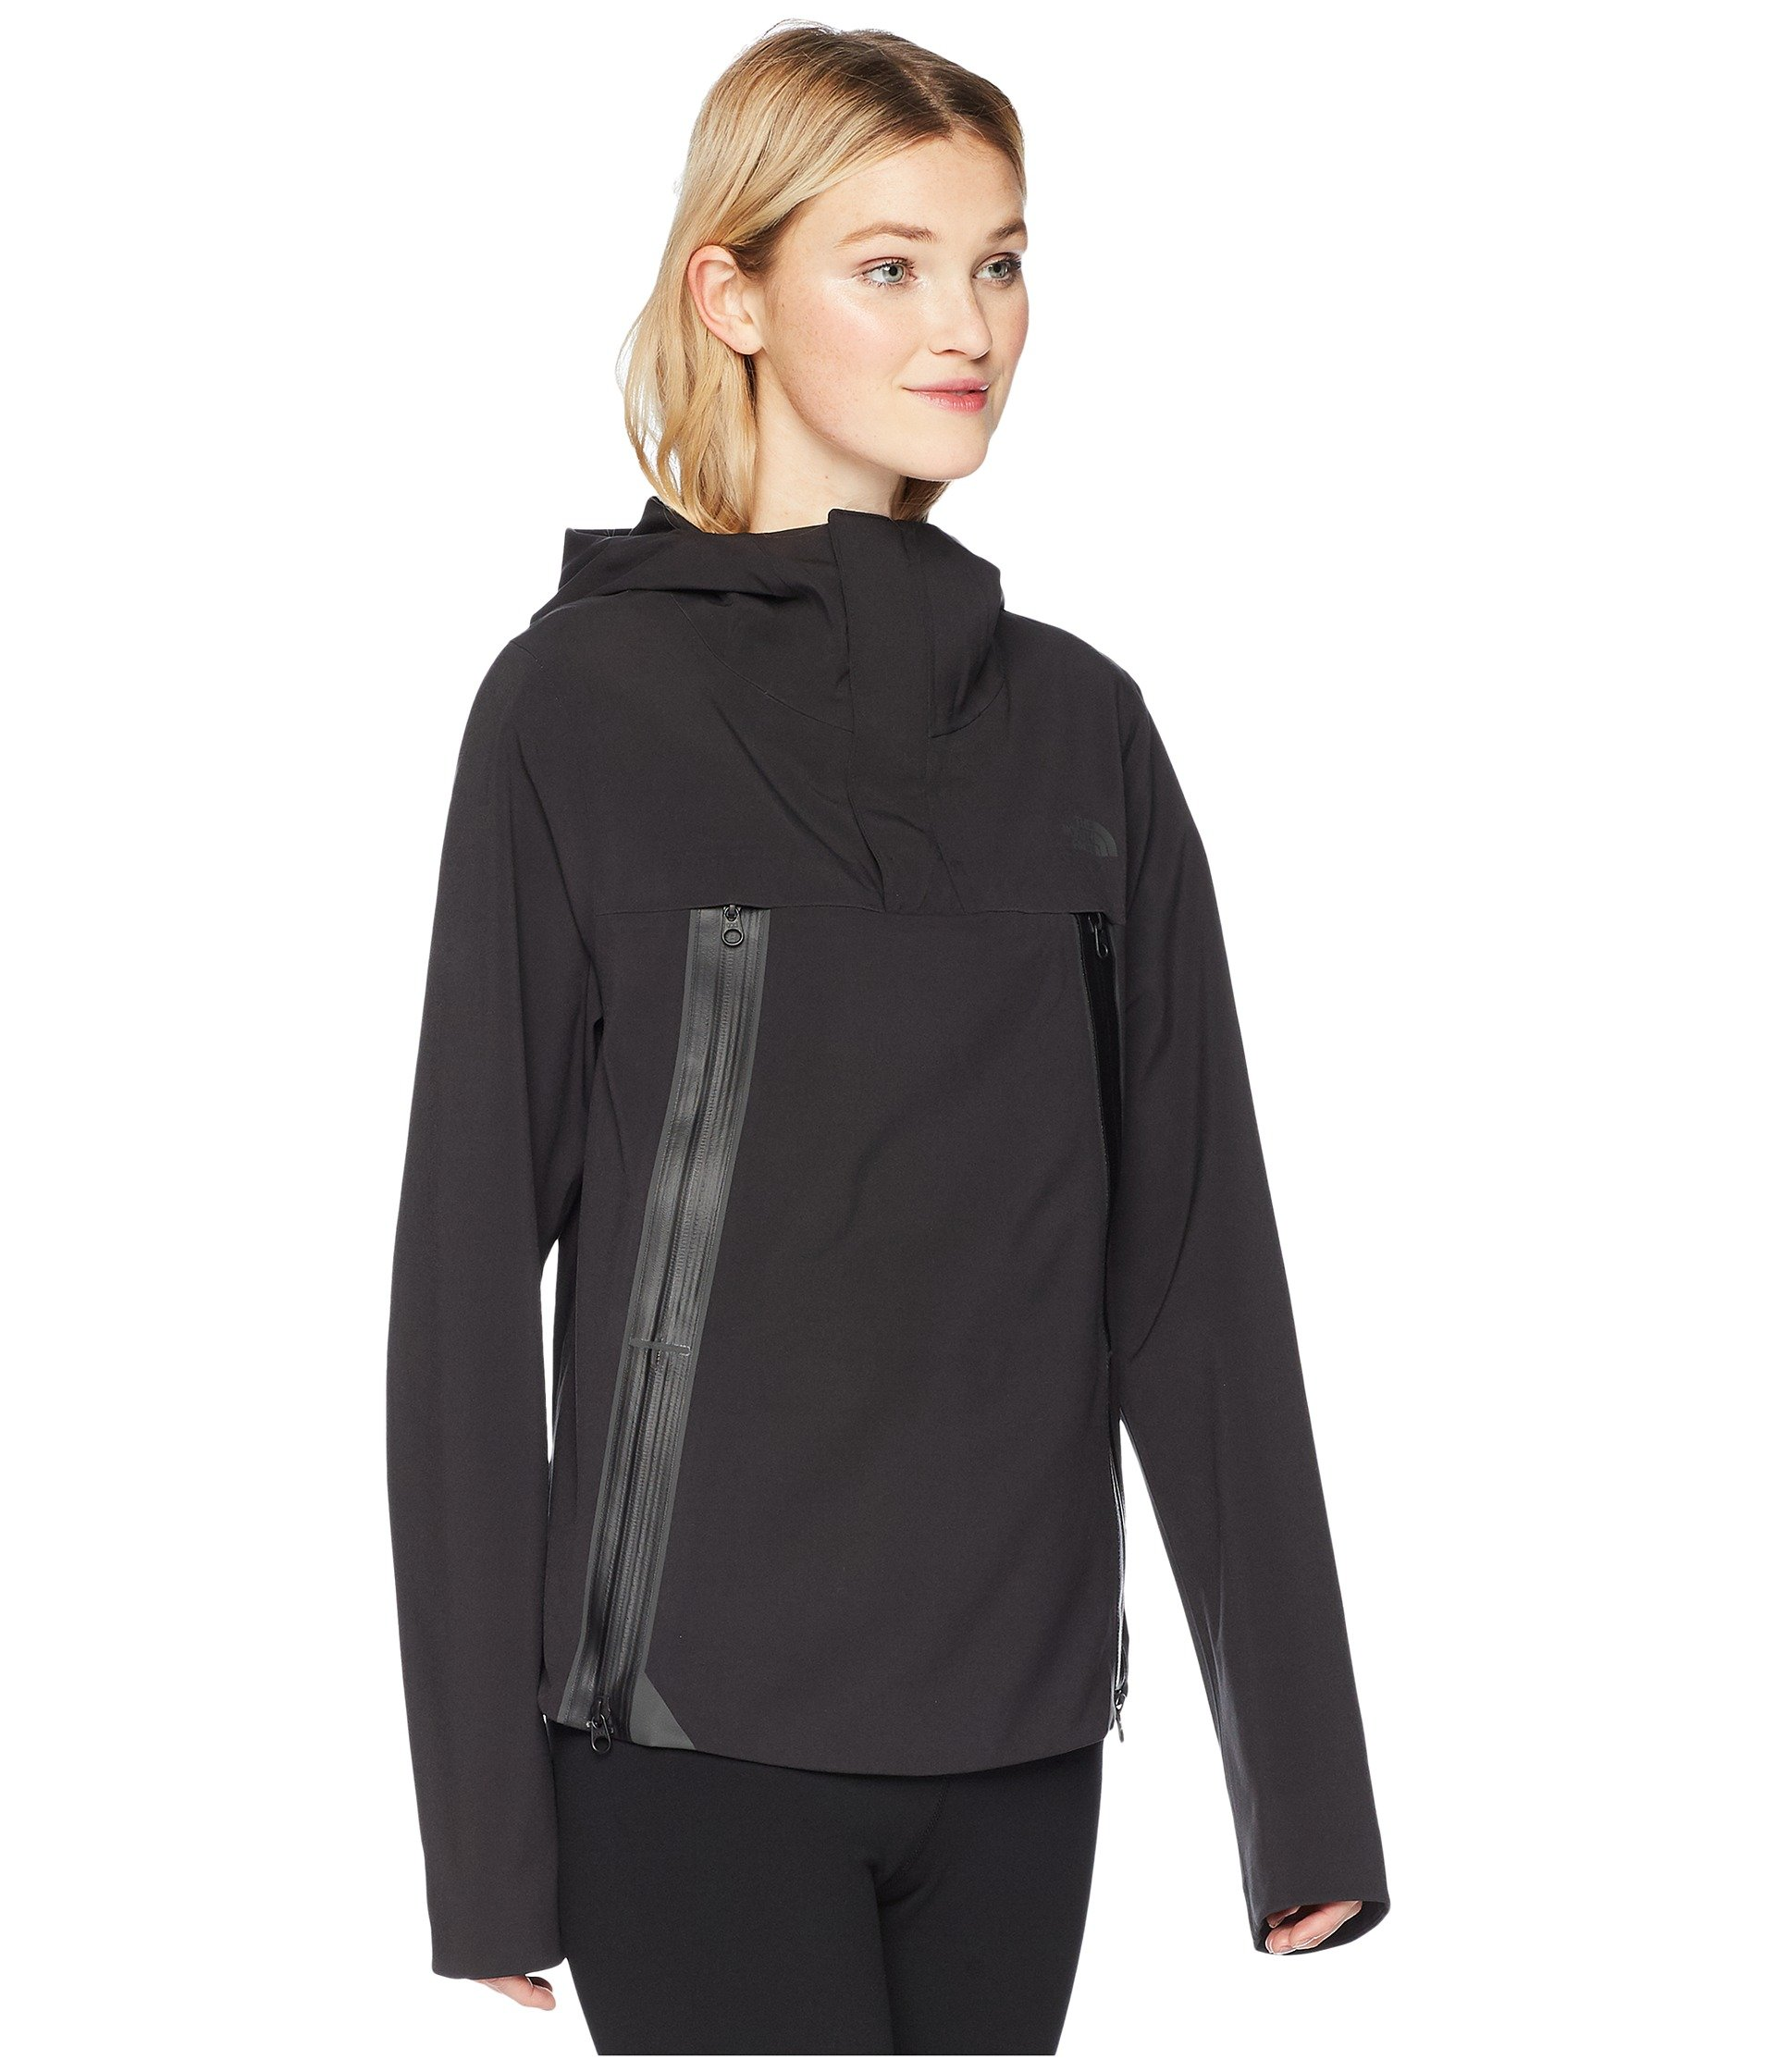 Anorak Flex Face Tnf Apex North The Black Gtx™ Cape UqZYfWxw